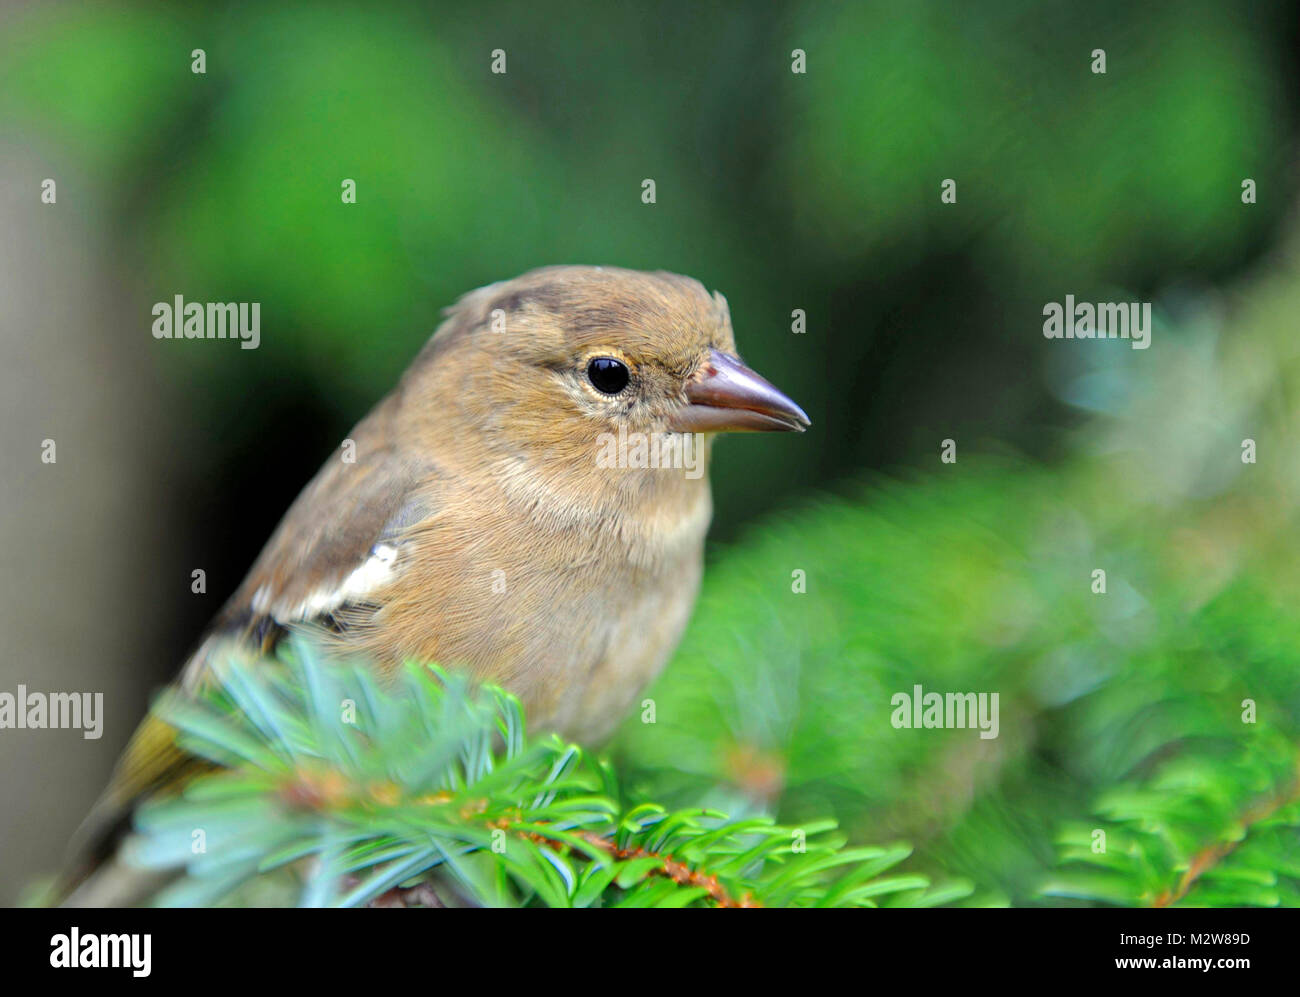 Greenfinch or Eurasian greenfinch, Carduelis chloris, on search for food in the spruce forest - Stock Image